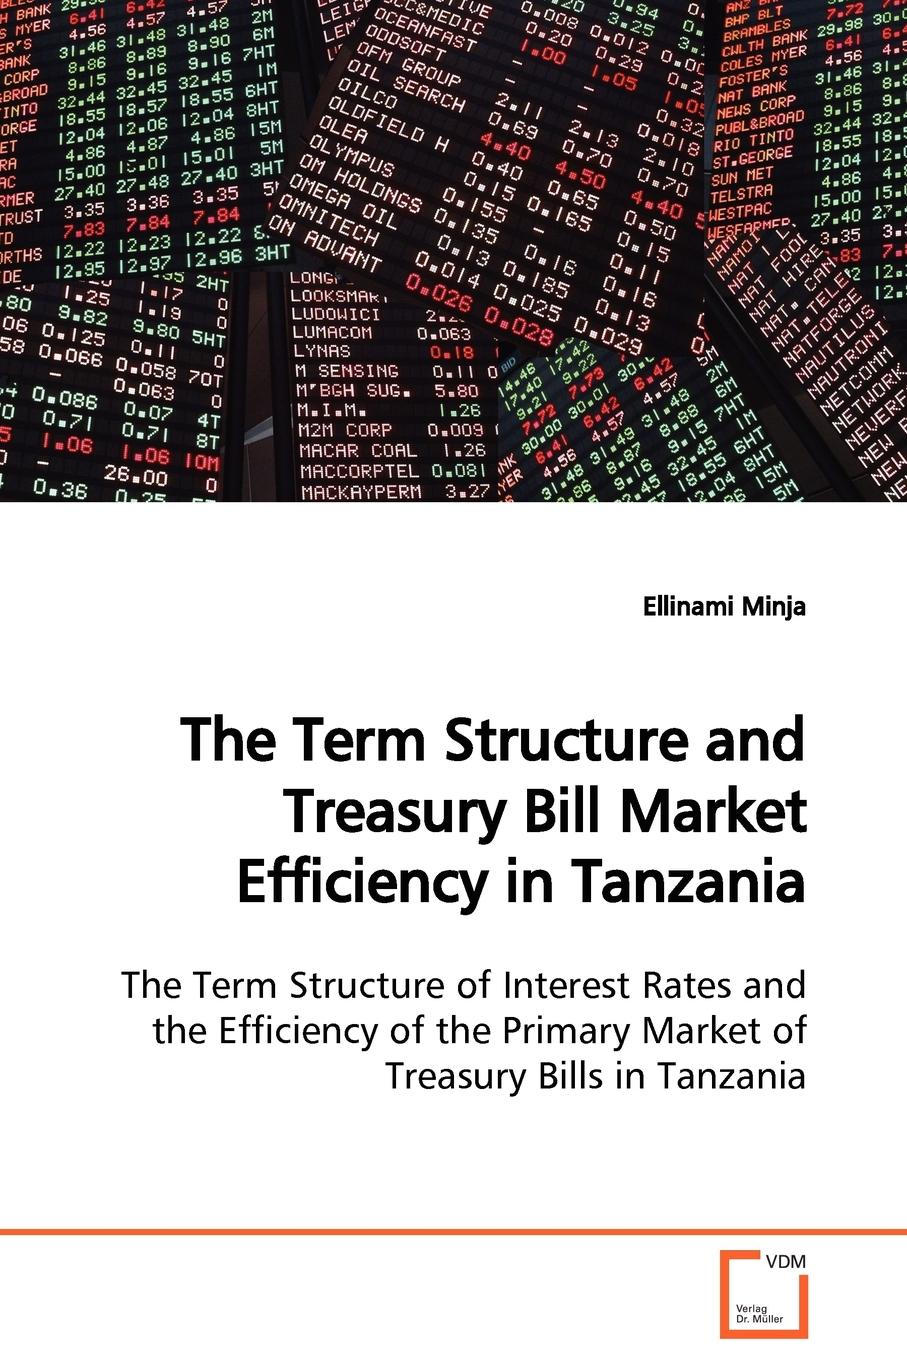 Ellinami Minja The Term Structure and Treasury Bill Market Efficiency in Tanzania The Term Structure of Interest Rates and the Efficiency of the Primary Market of Treasury Bills in Tanzania halil kiymaz market microstructure in emerging and developed markets price discovery information flows and transaction costs